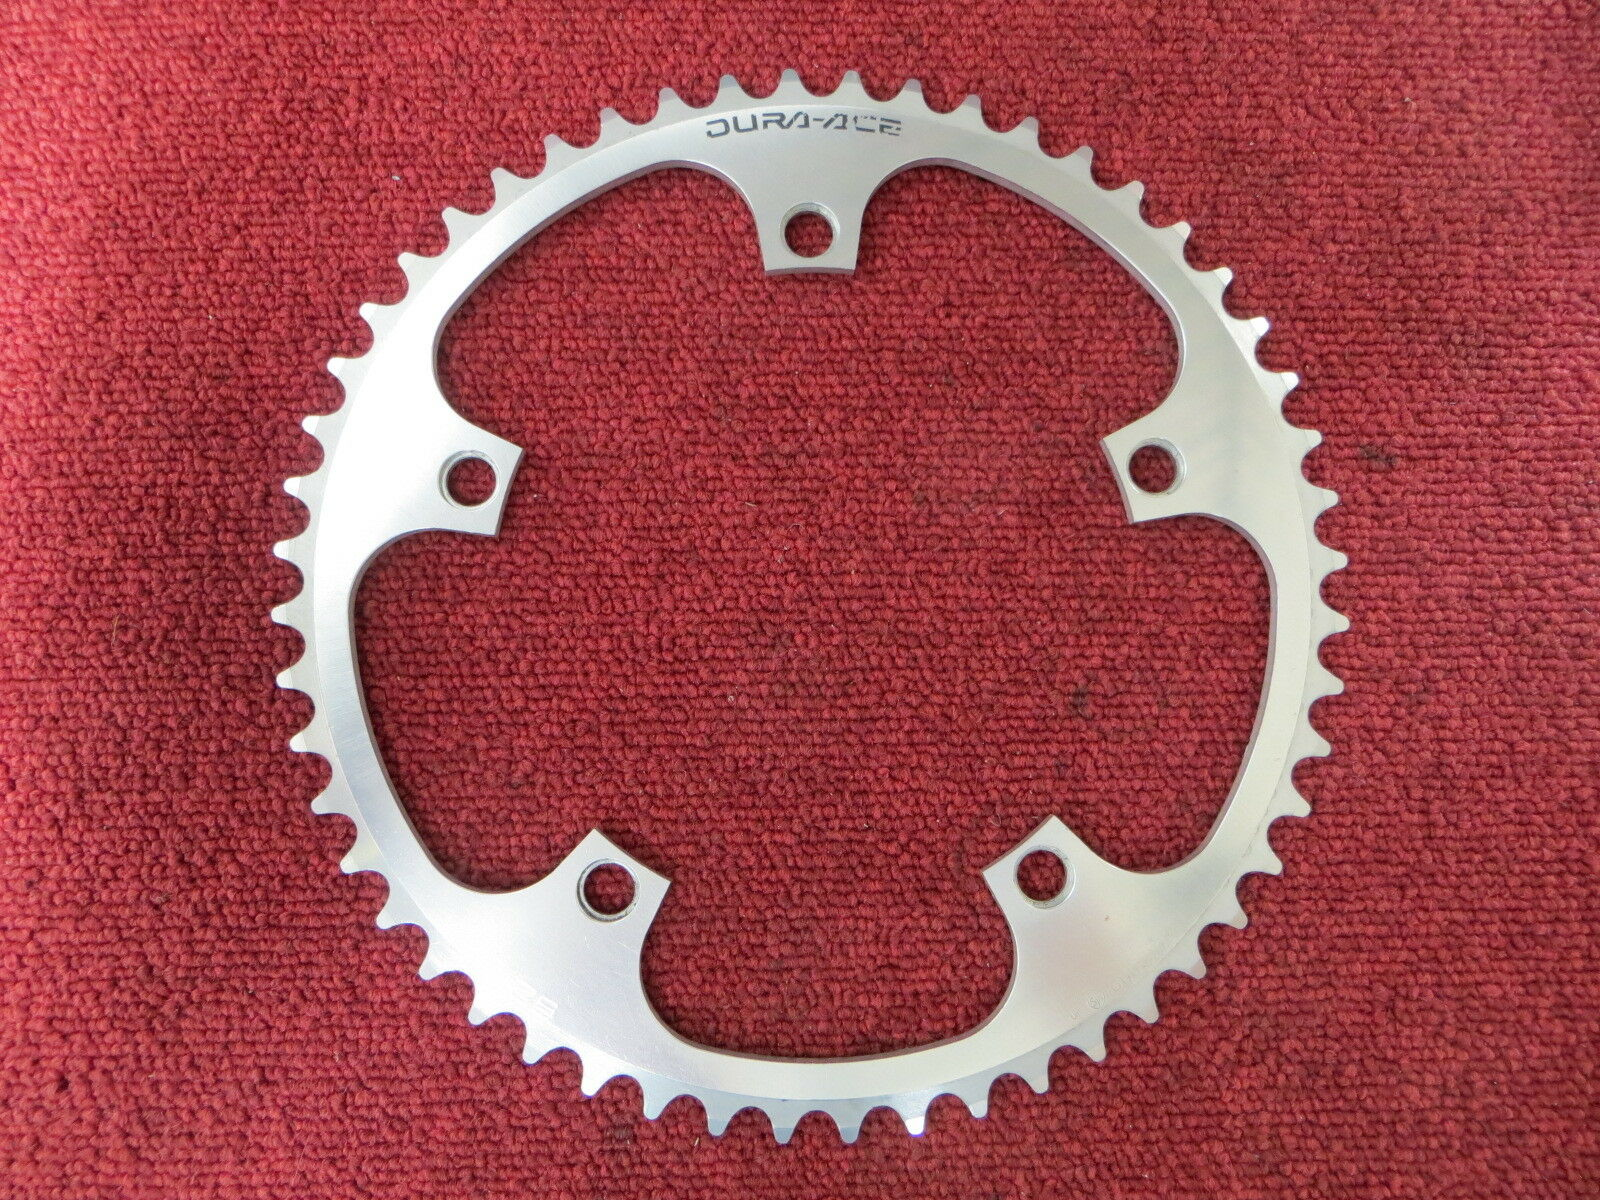 Shimano Dura Ace FC-7600 144BCD 1  8   NJS Chainring 52T Fixed Gear (18062818)  factory direct sales